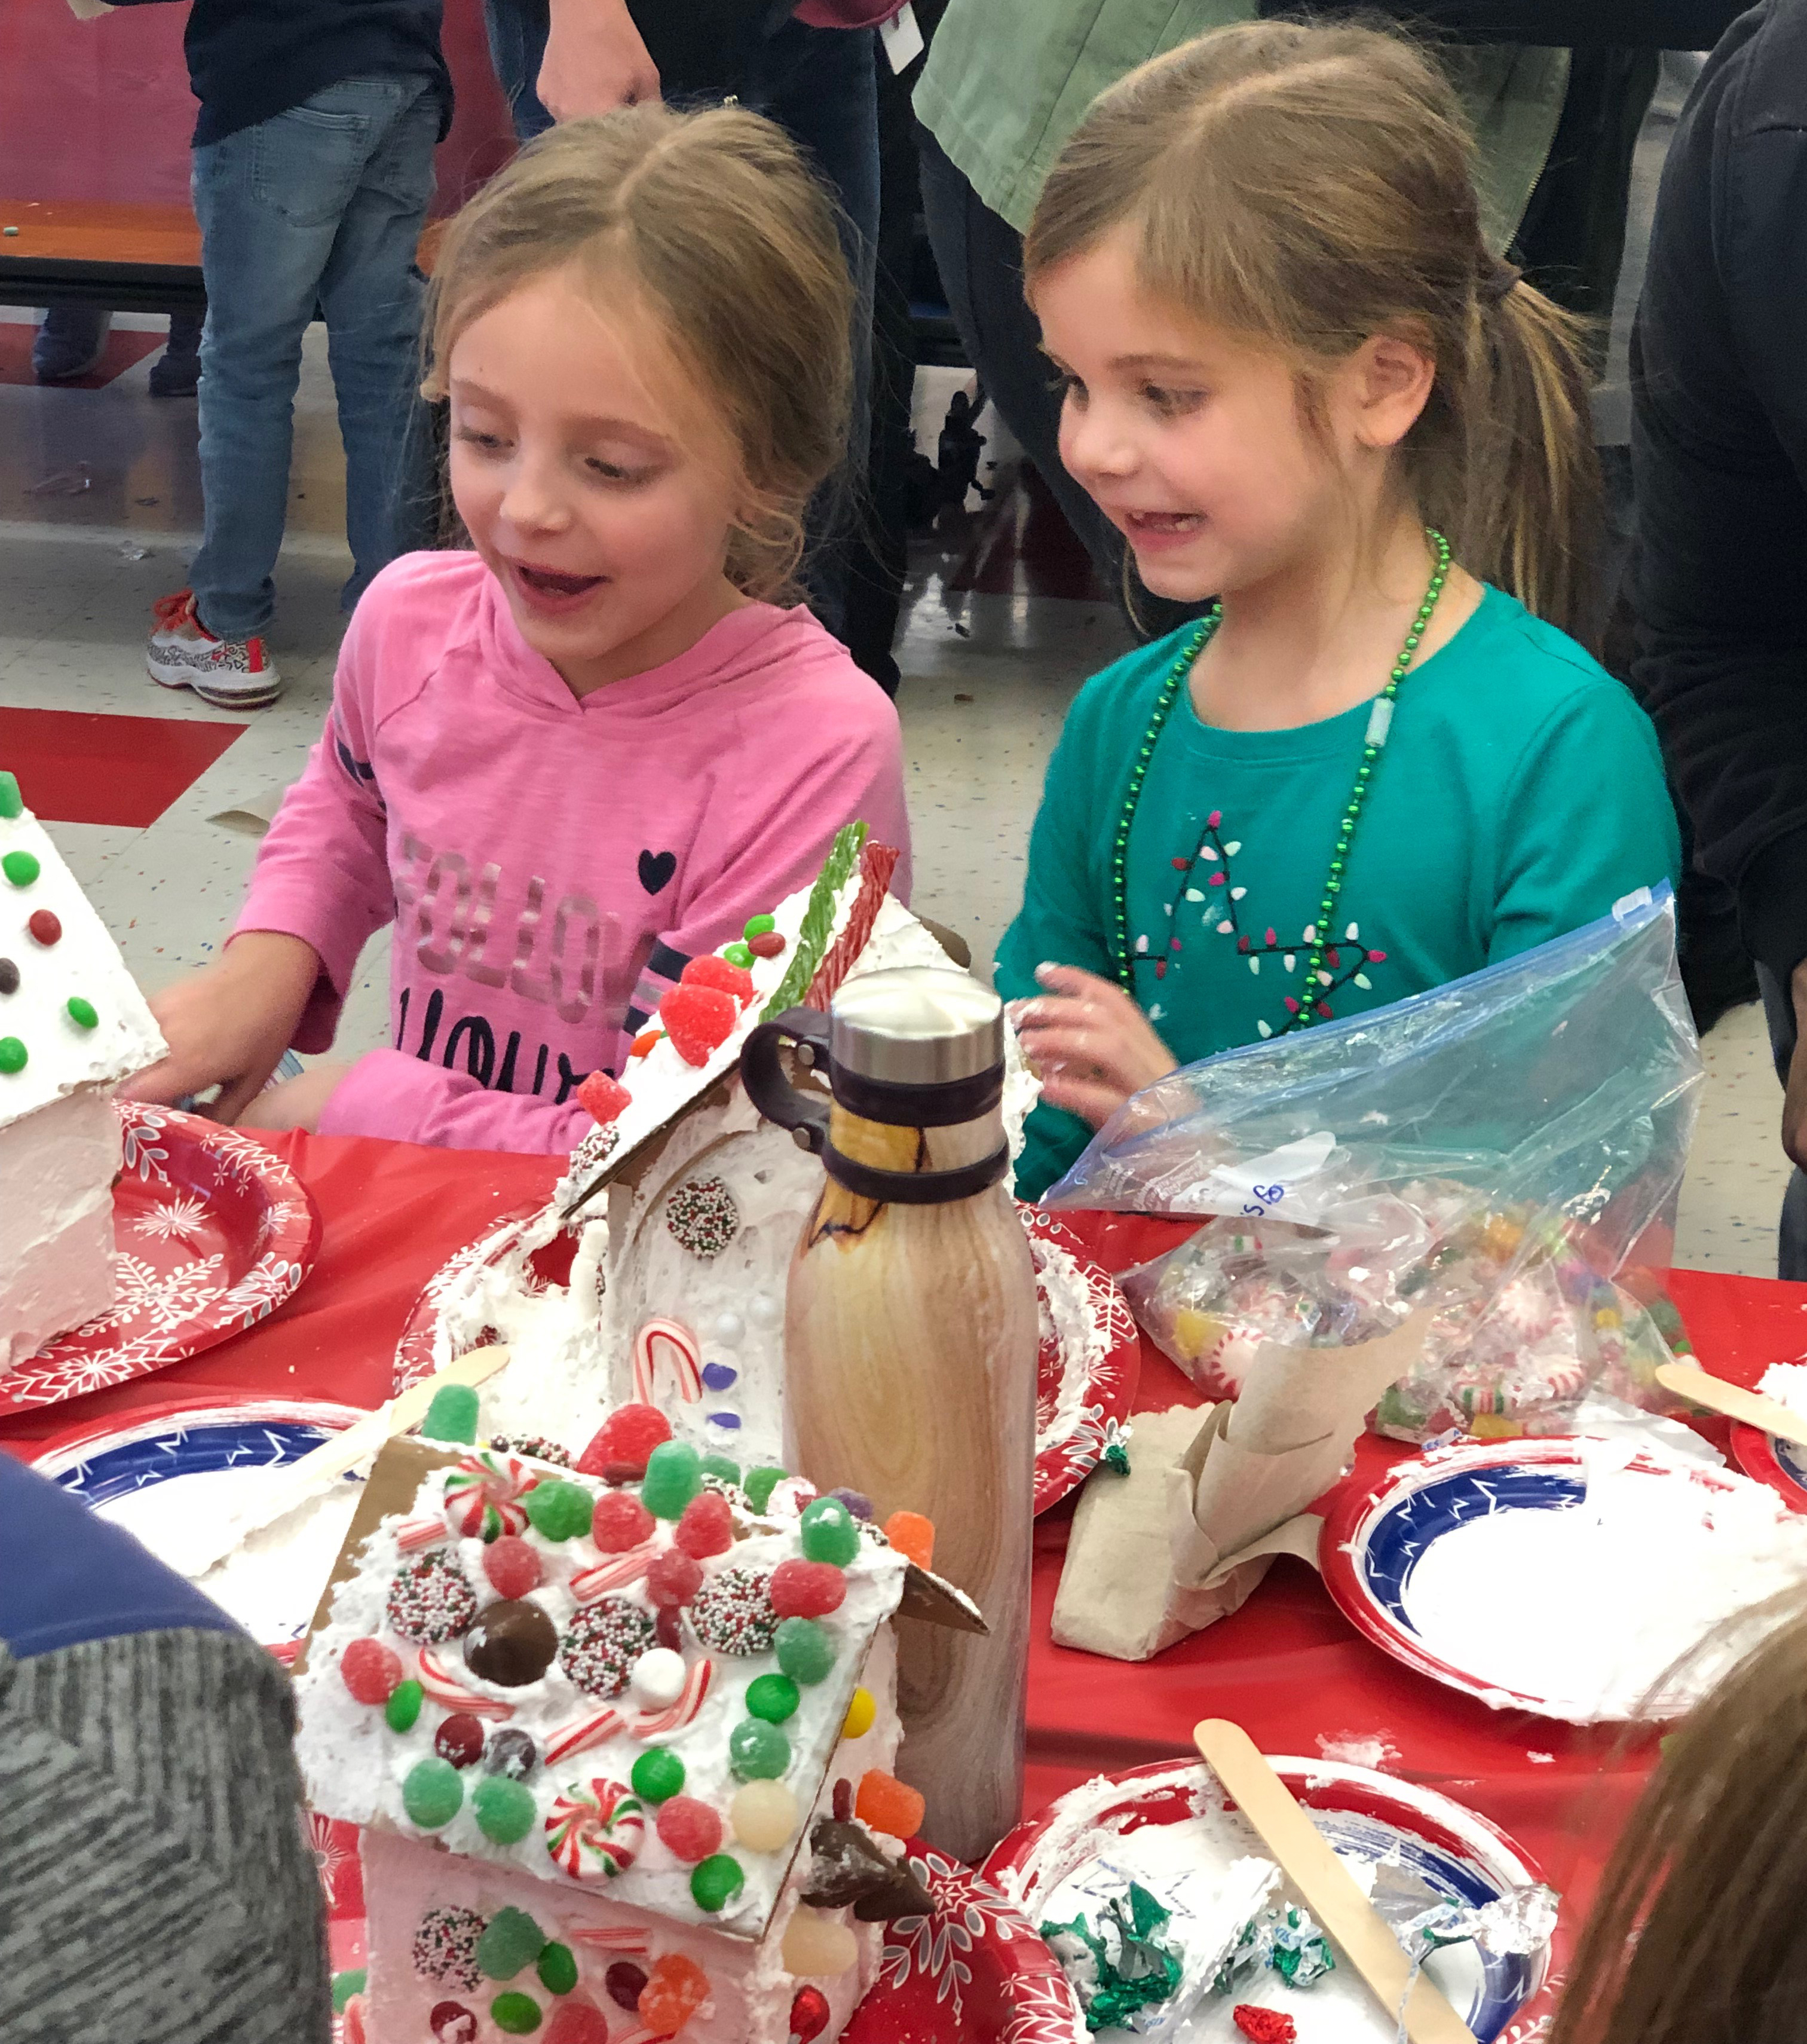 two girls put together a candy house together